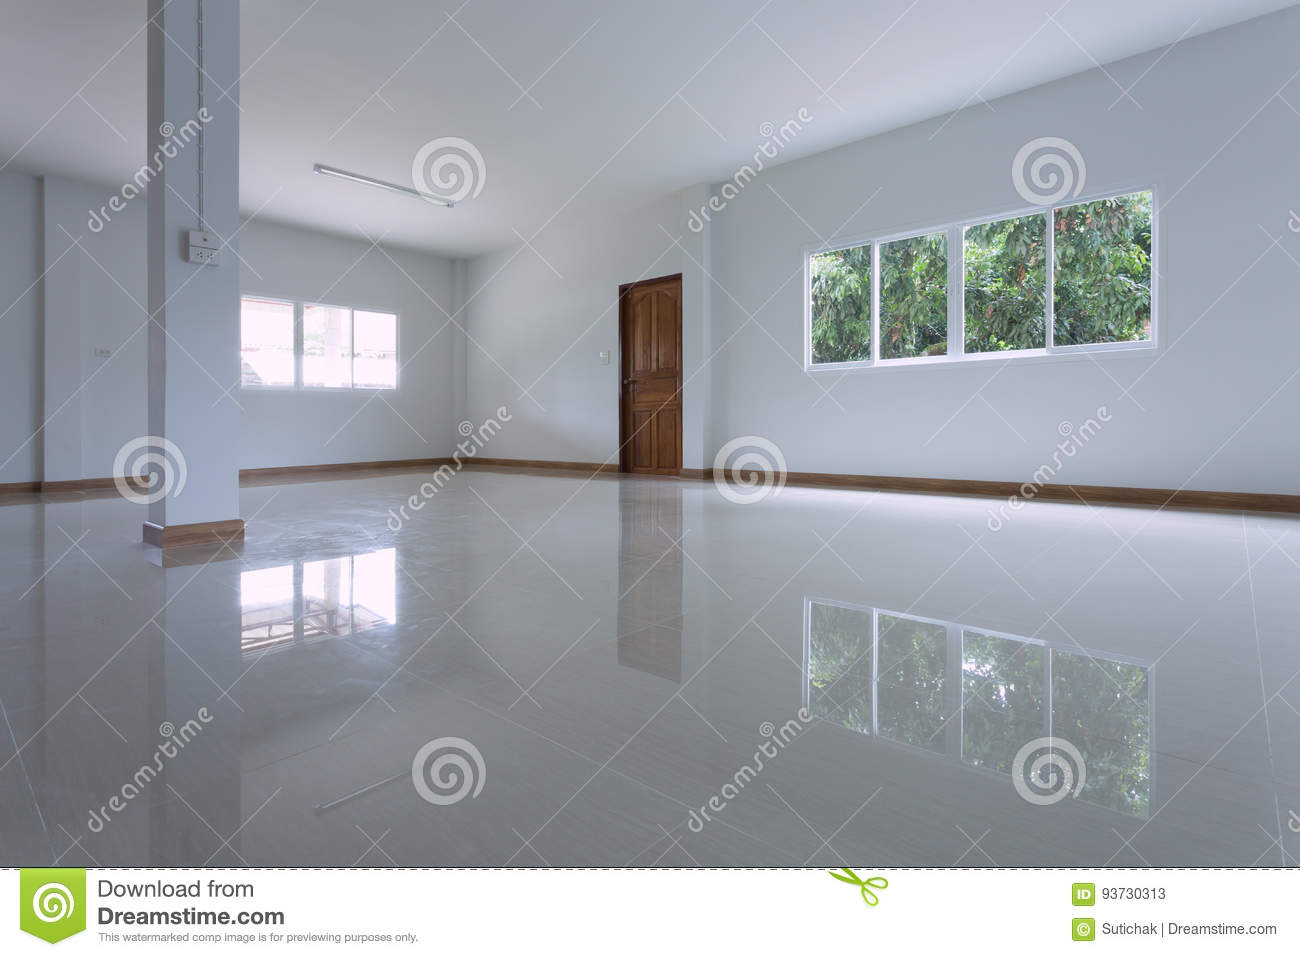 Empty White Room Interior In Residential House Building Stock Image ...